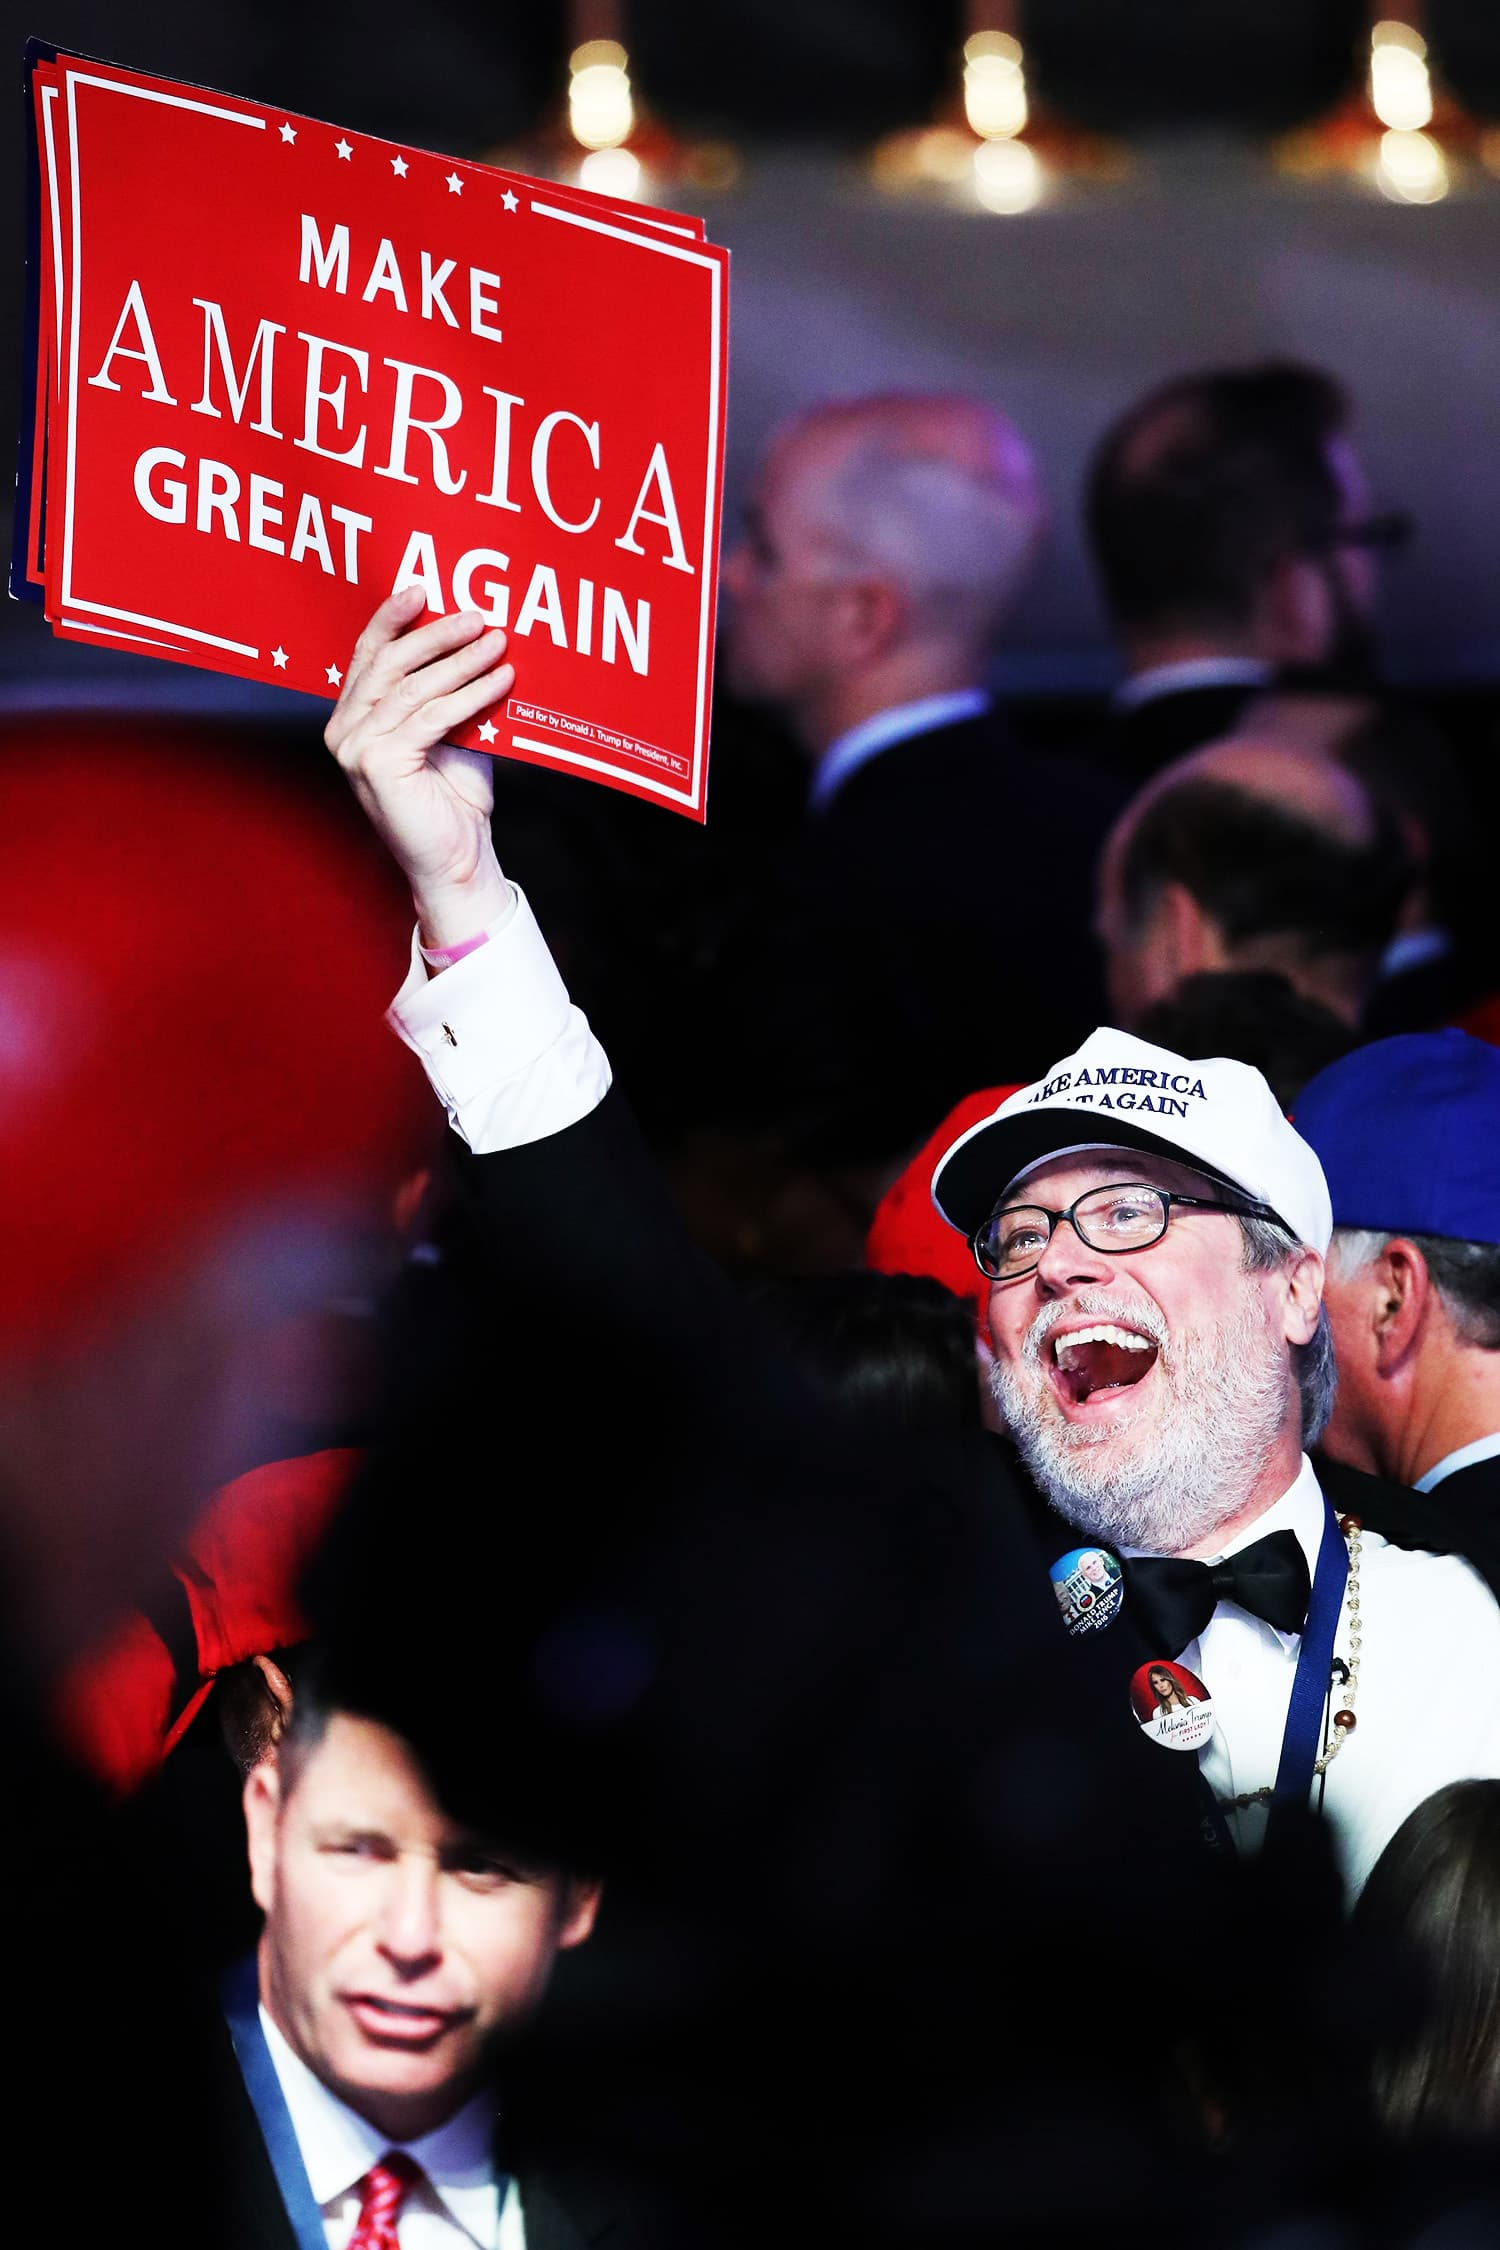 People cheer at Republican presidential nominee Donald Trump's election night event in New York City. —AFP